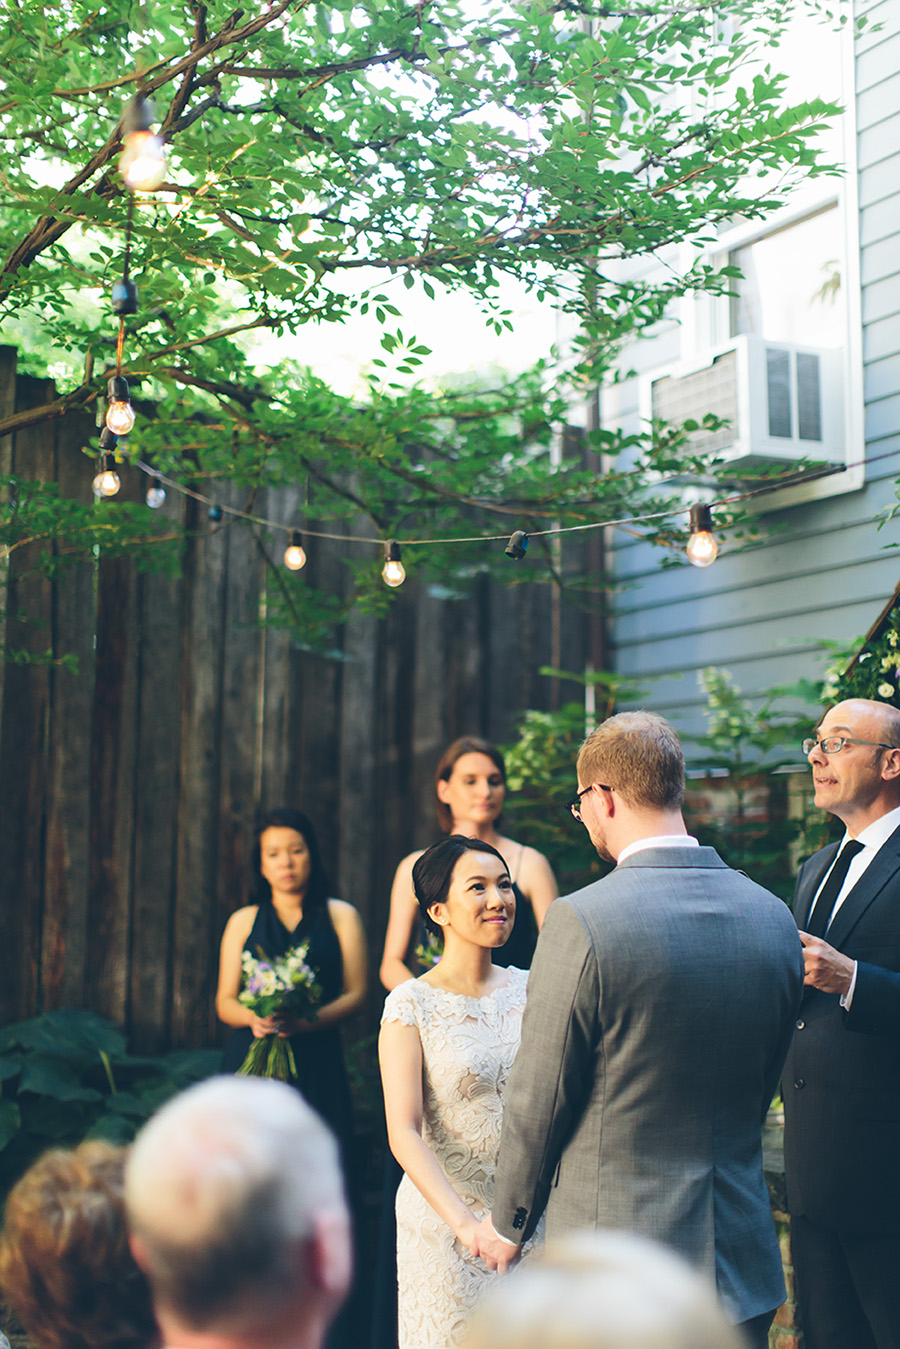 NEW-YORK-CITY-WEDDING-PHOTOGRAPHER-VINEGAR-HILL-HOUSE-INTIMATE-DUMBO-WEDDING-ELOPEMENT-MANHATTAN-BROOKLYN-WEDDING-PHOTOGRAPHY-0052.jpg